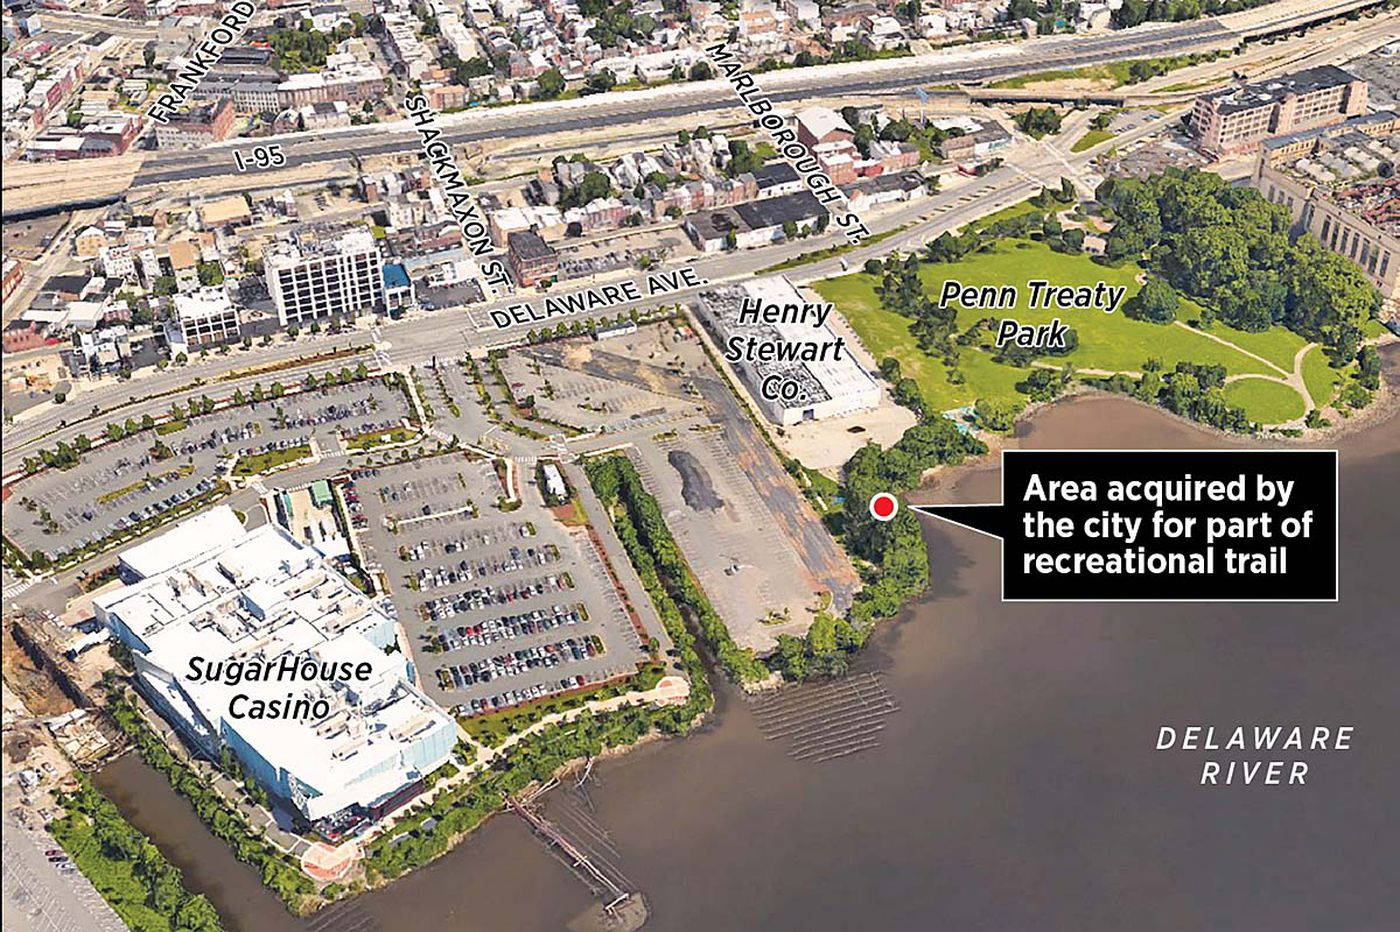 Philly takes control of industrial business' riverfront property for cycling/walking trail